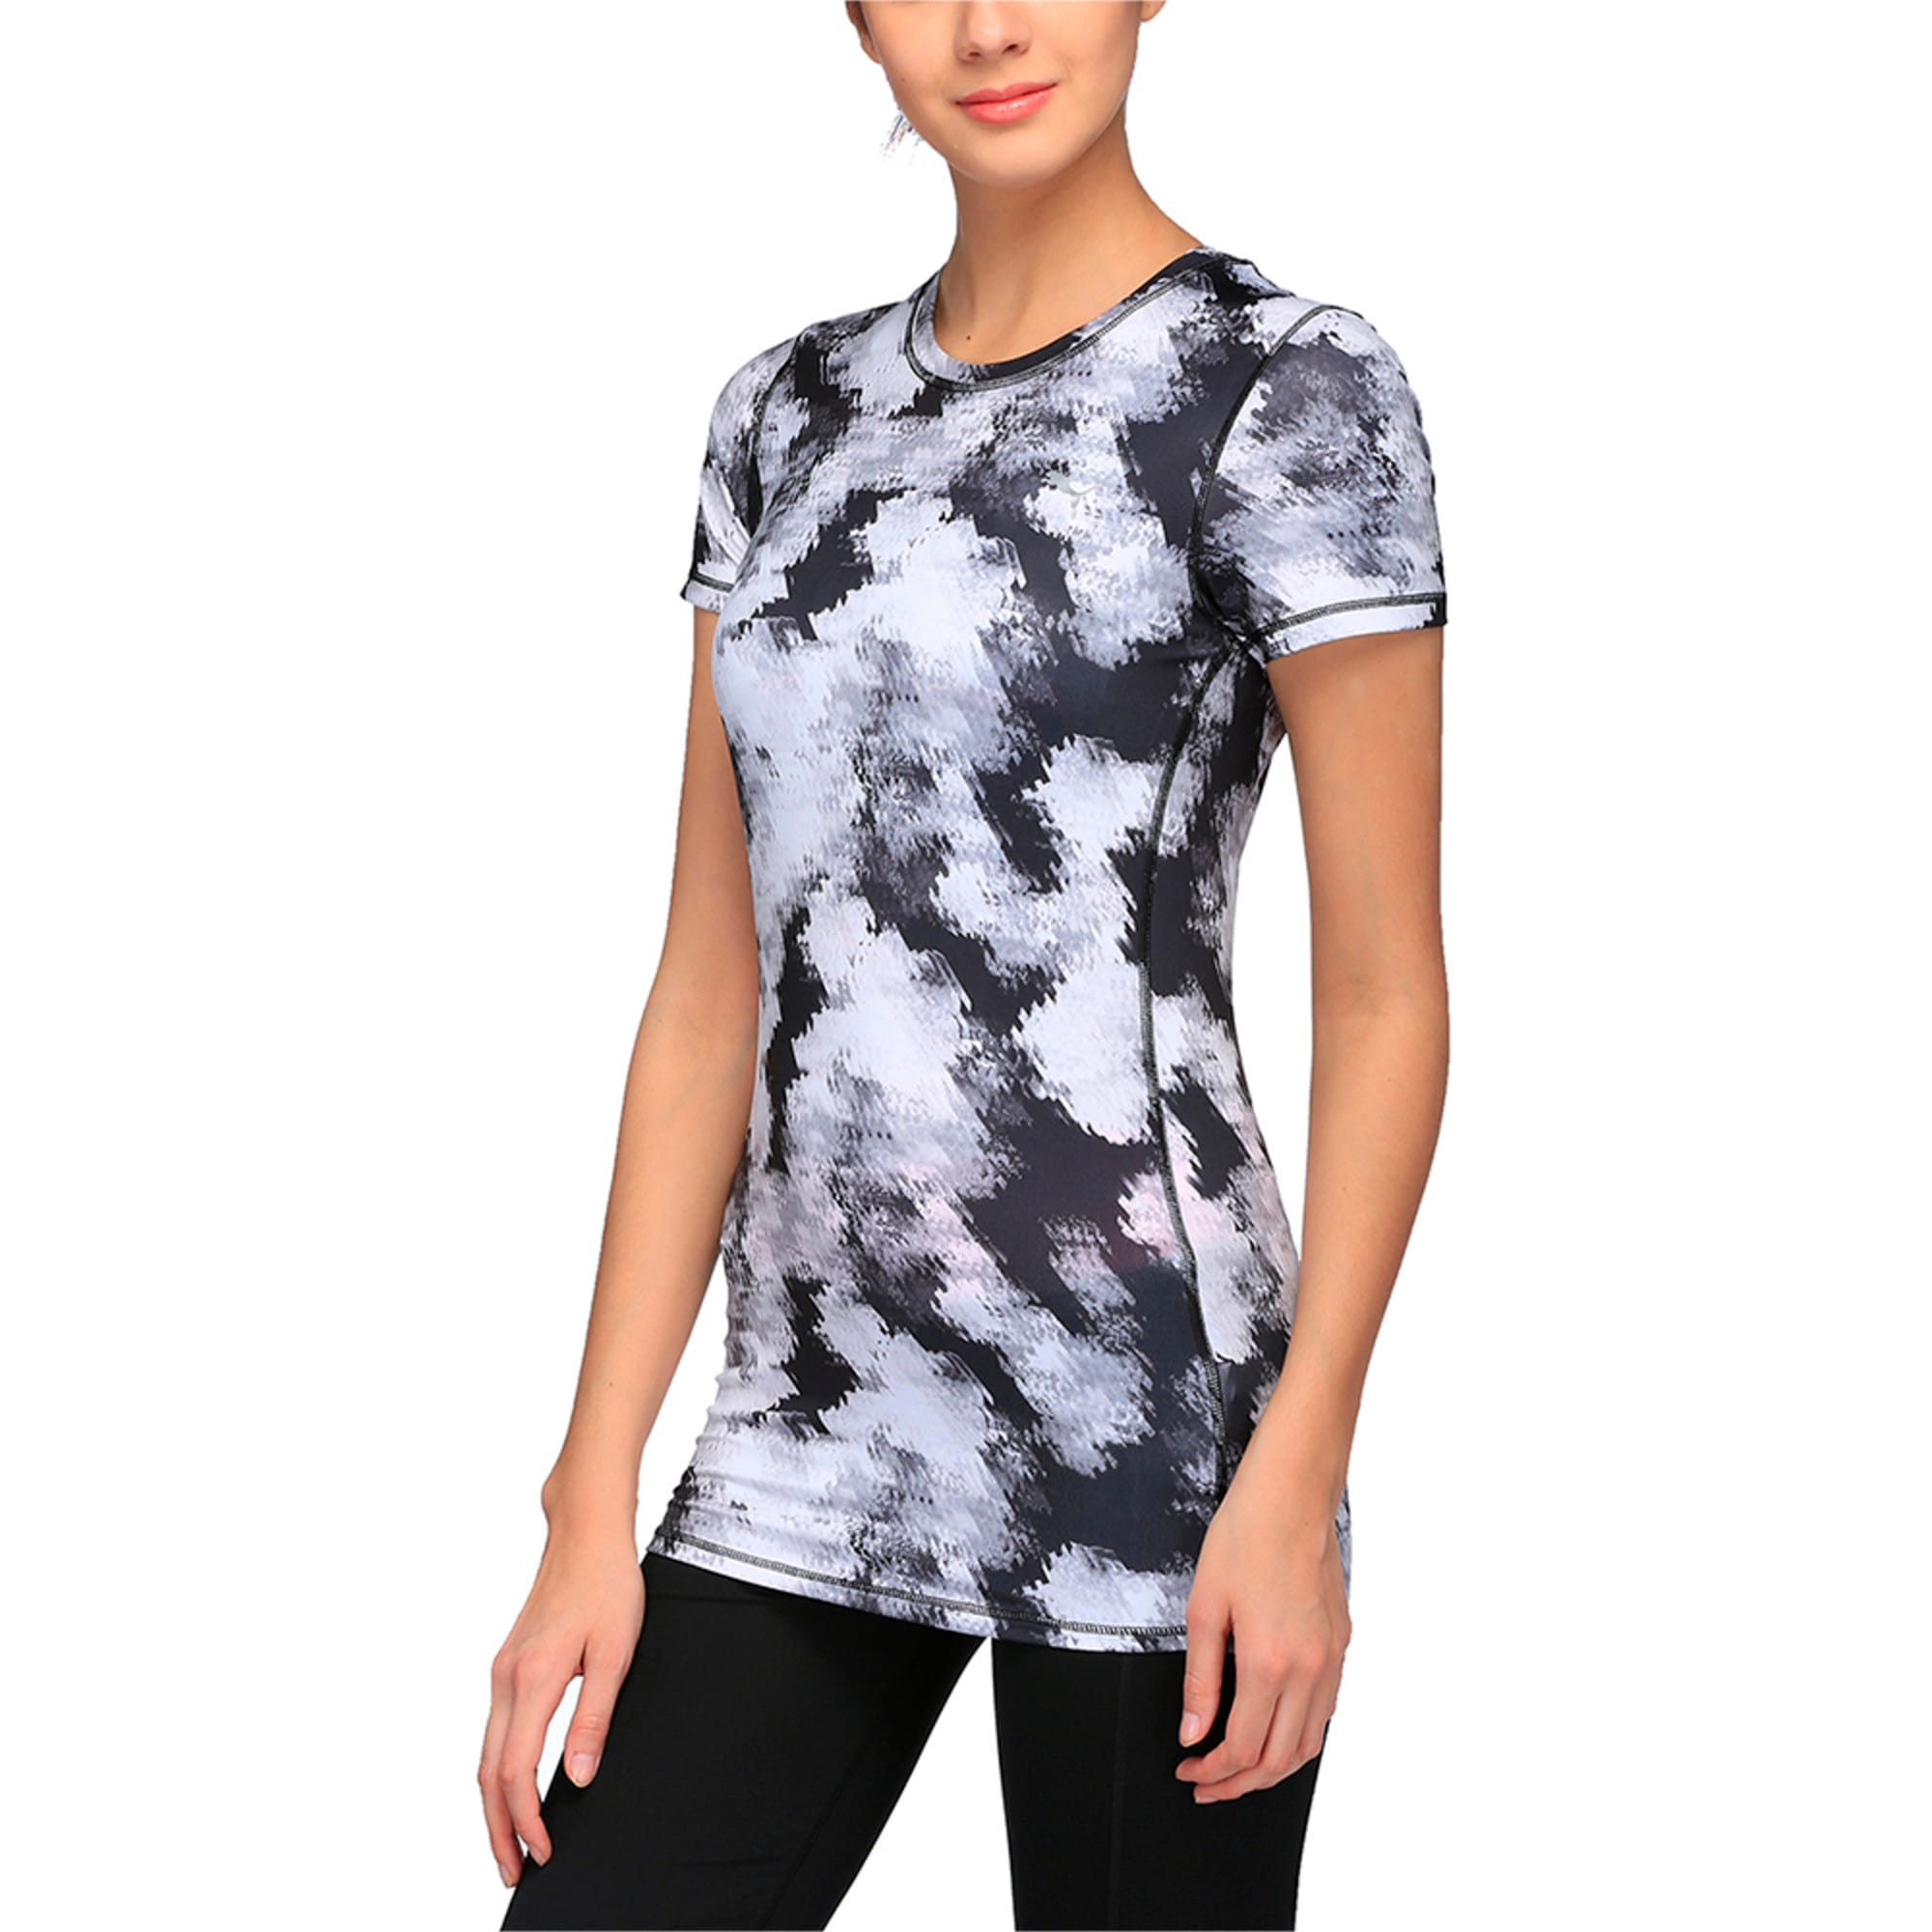 Thumbnail 1 of Training Women's Essential Graphic T-Shirt, black-white explosive print, medium-IND